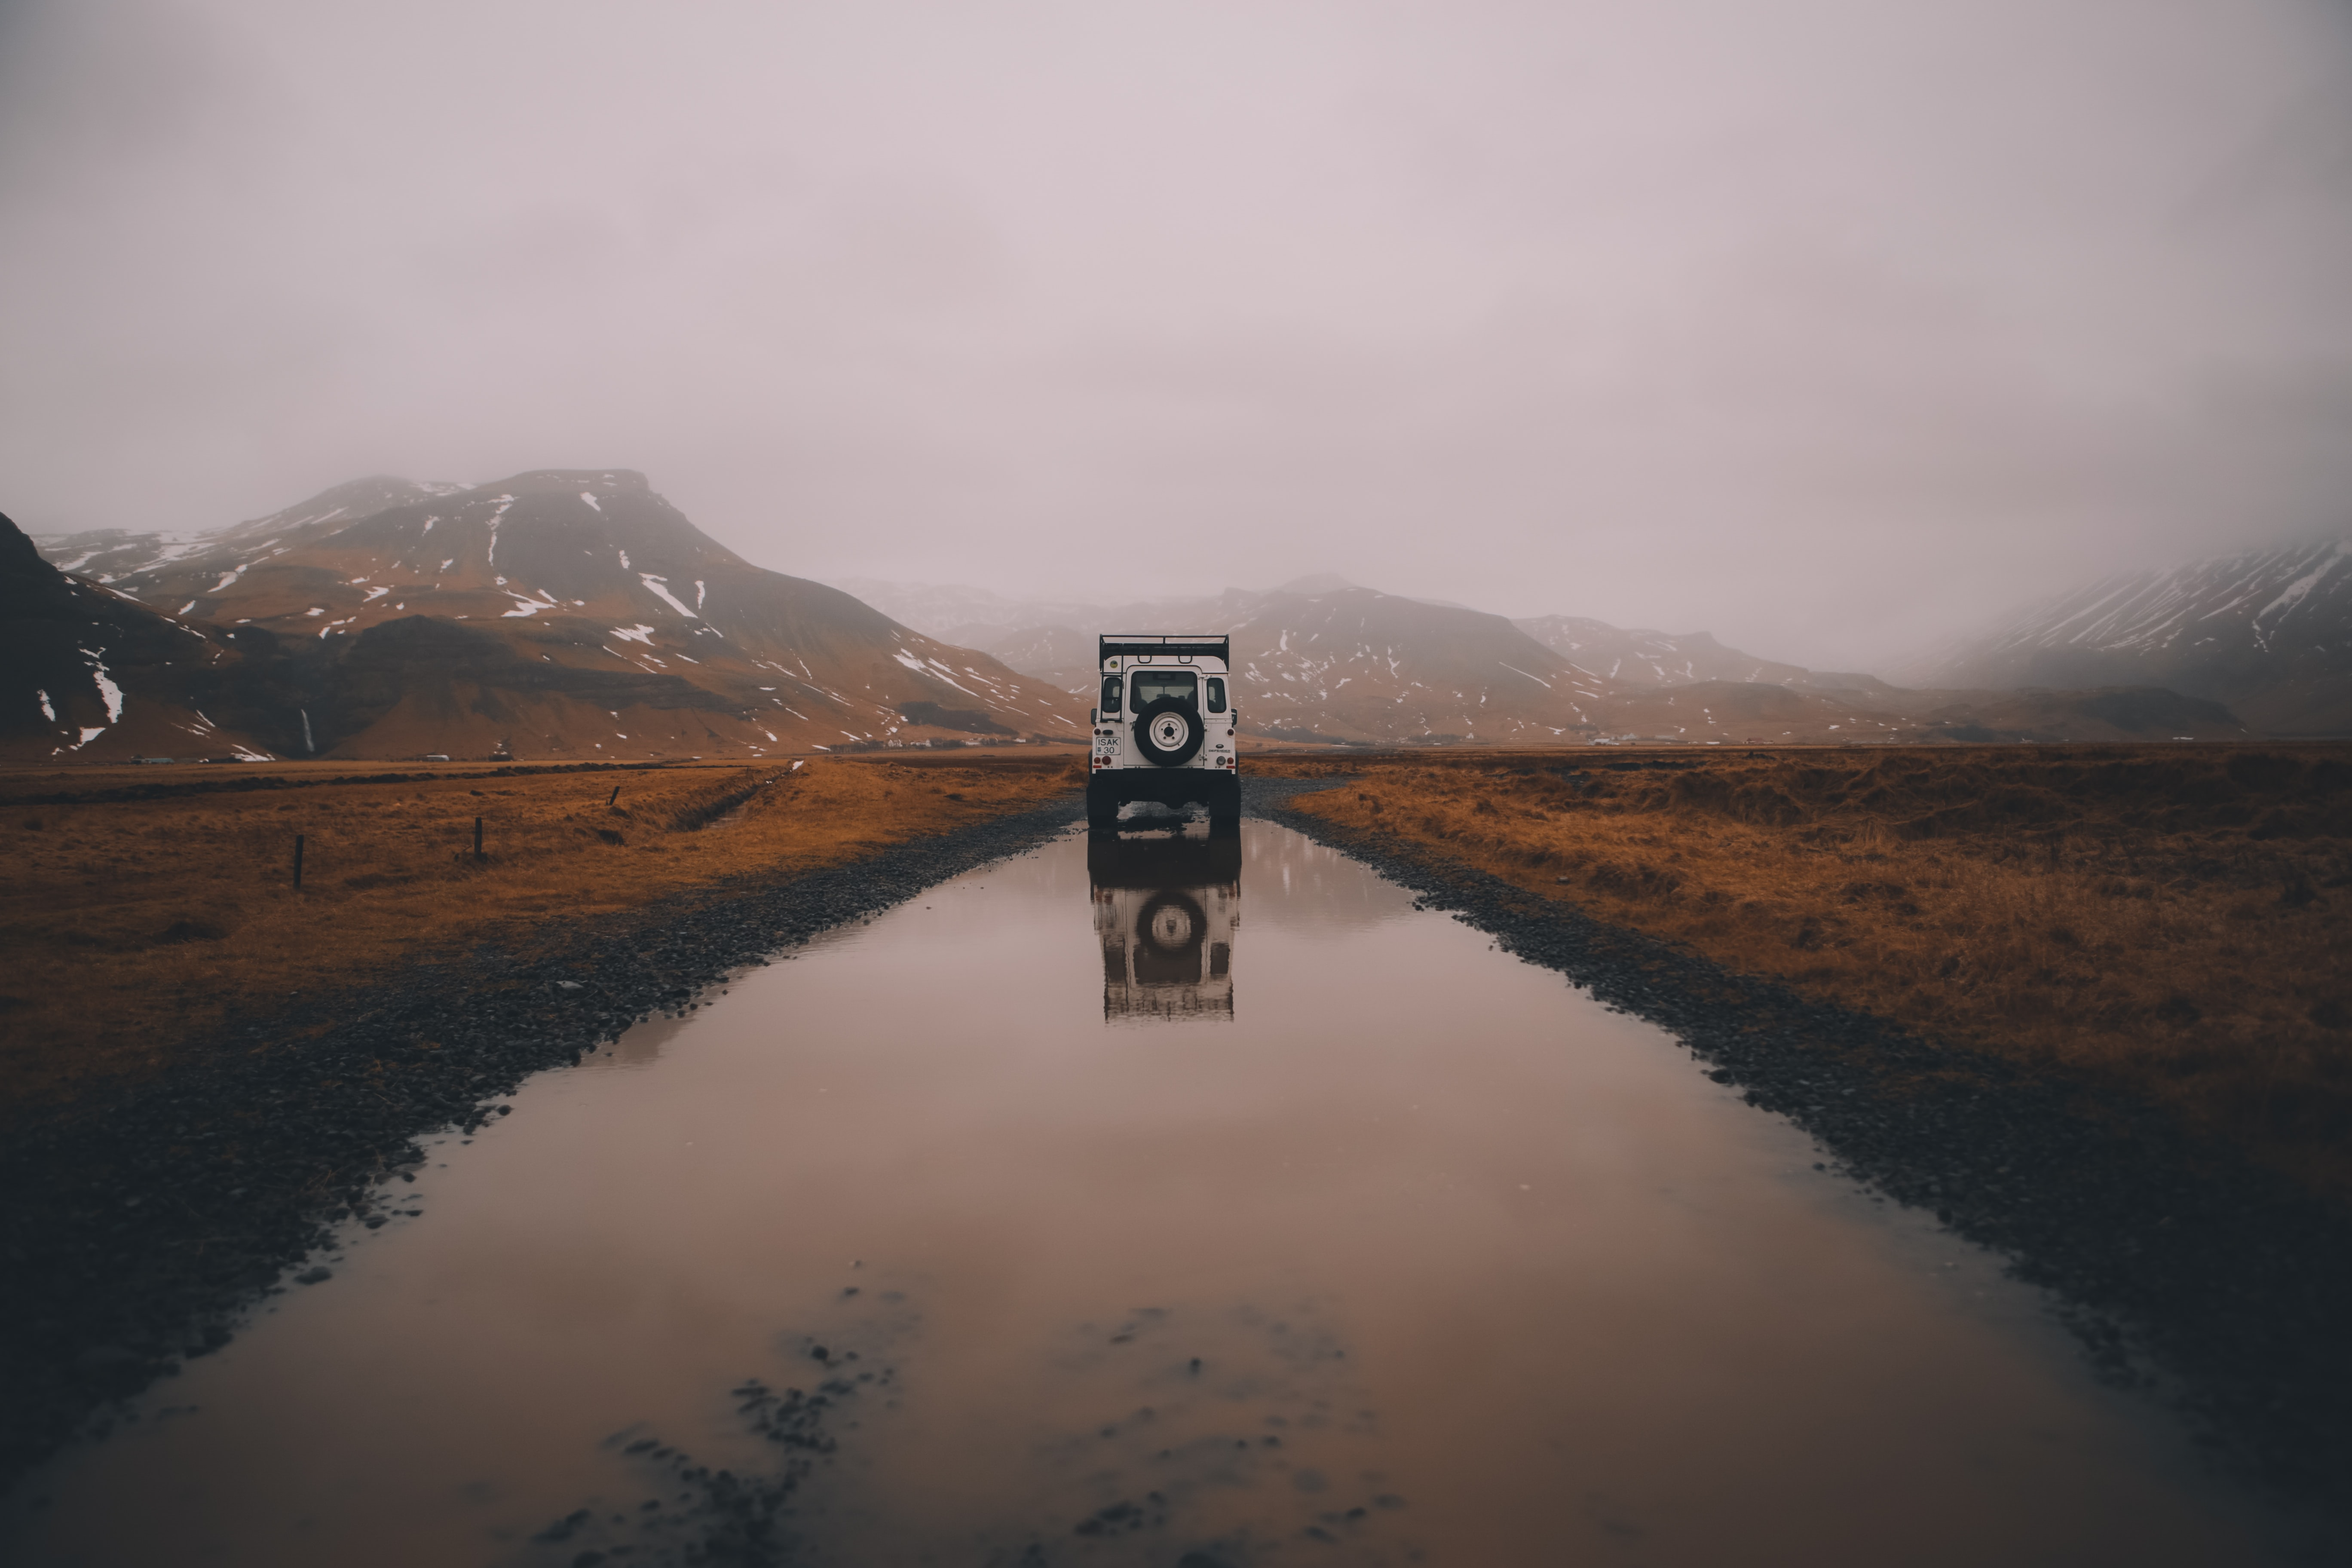 White offroad Landrover in a foggy Skógar region reflected in a puddle of water